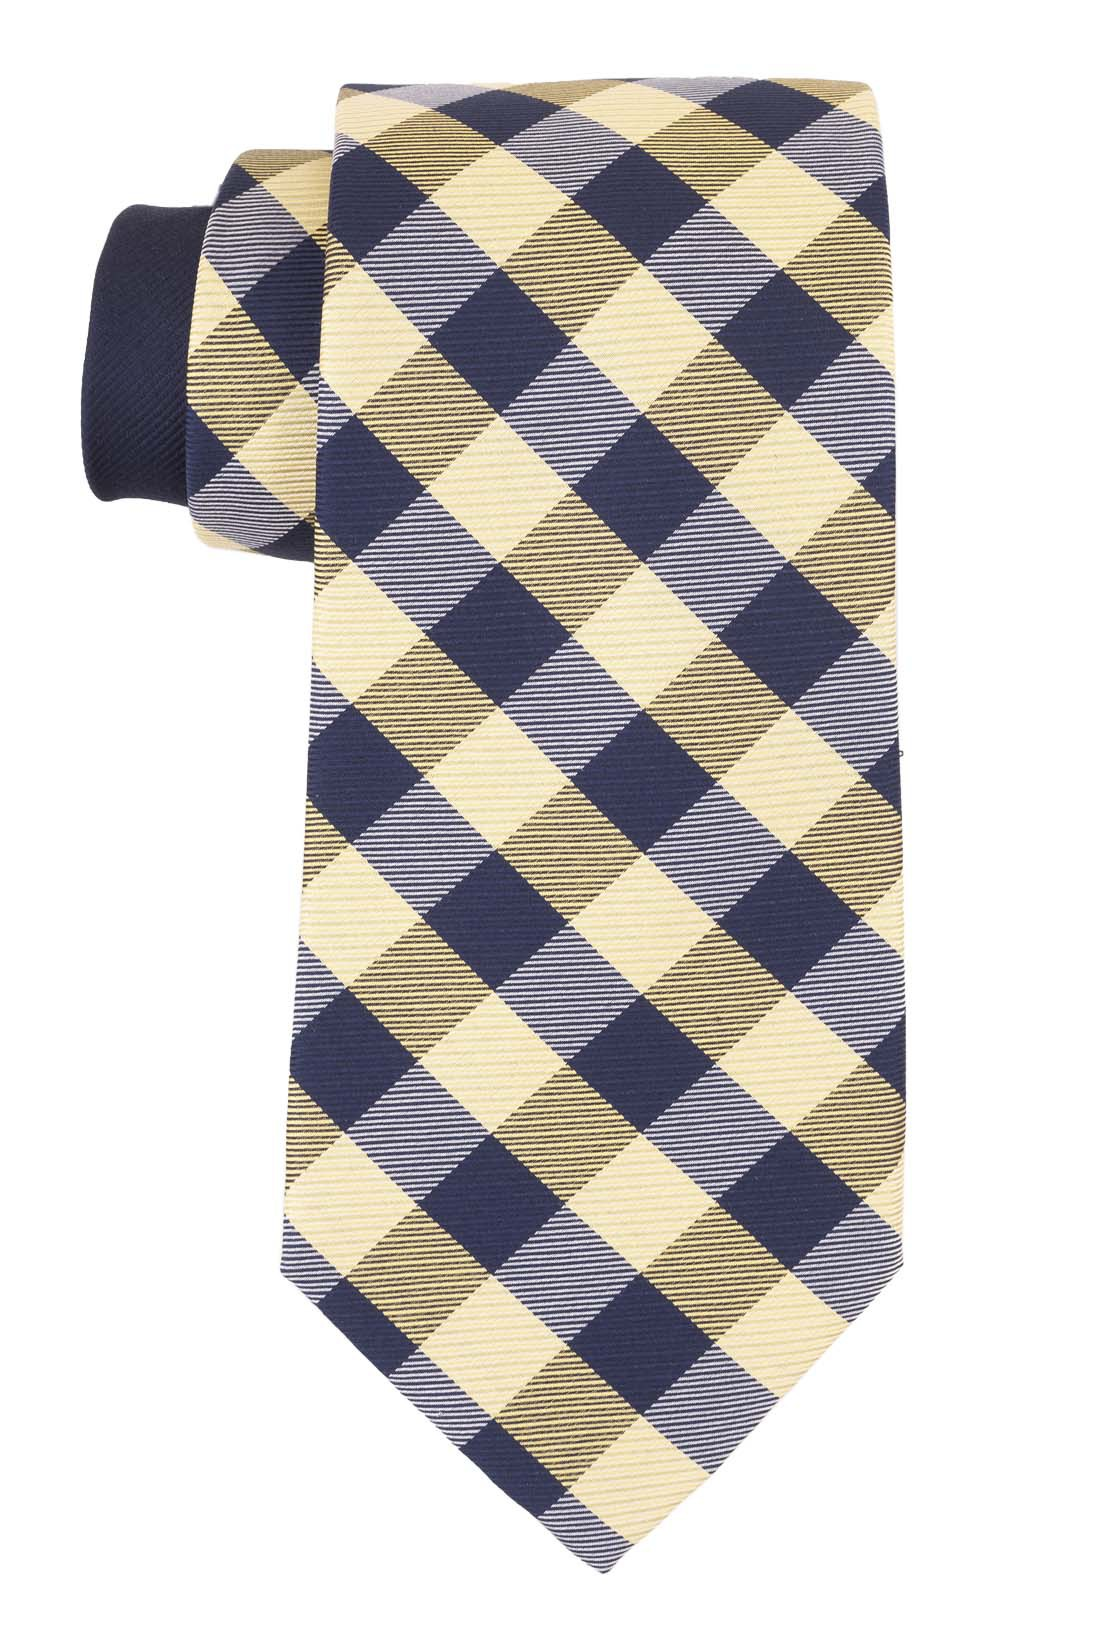 Oid City Checks Yellow and Blue 100% Silk Necktie